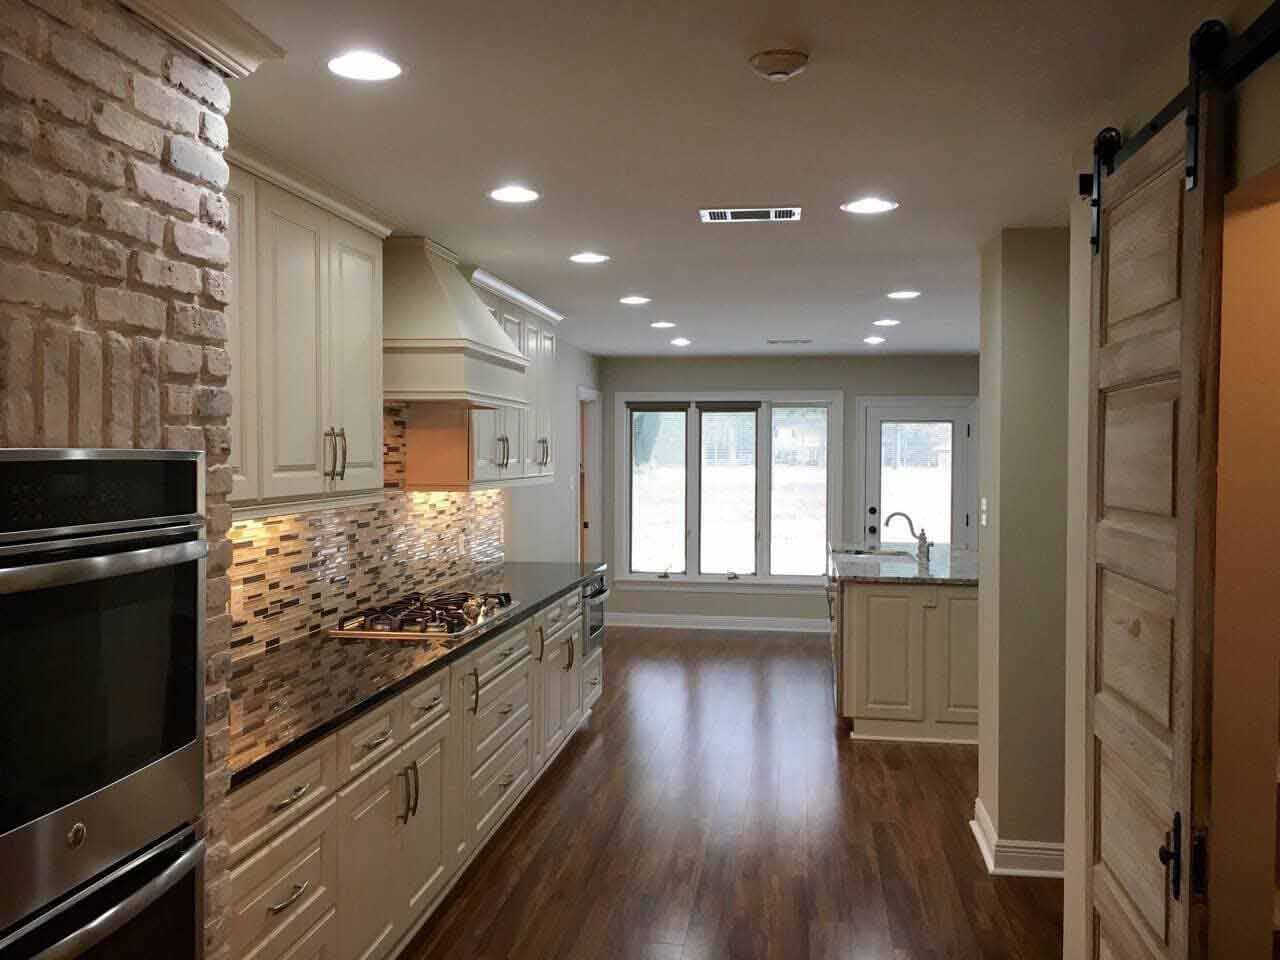 - Kitchen Cabinets -G2 Ivory White jacksonville solid wood cabinets G 827 Avigna Granite World